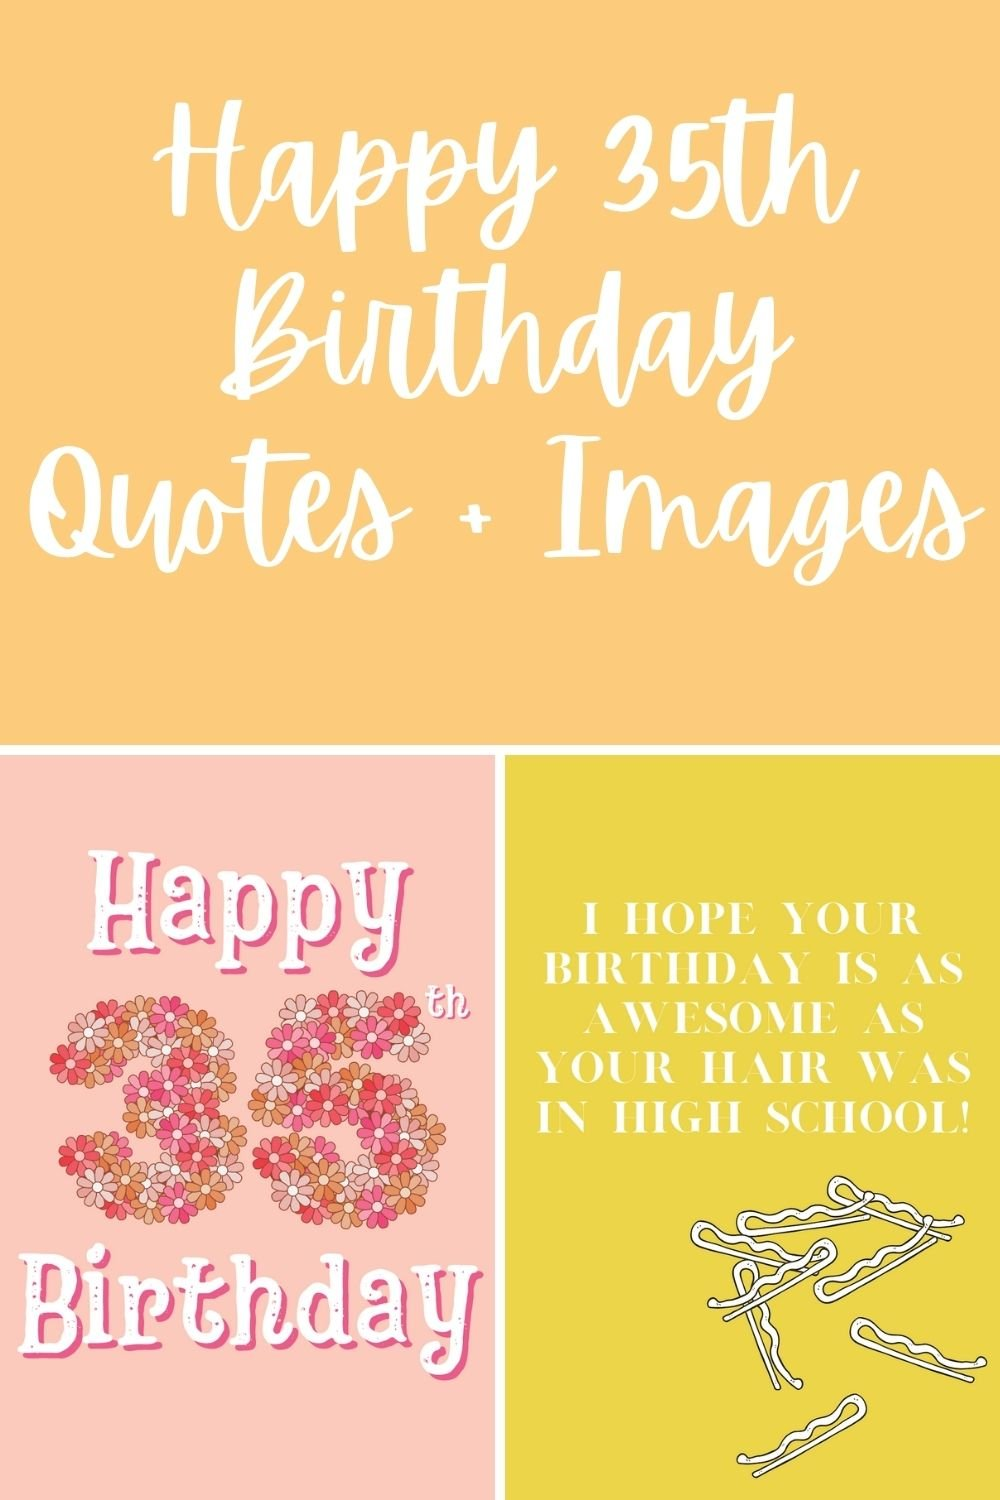 Happy 35th Birthday Quotes With Images